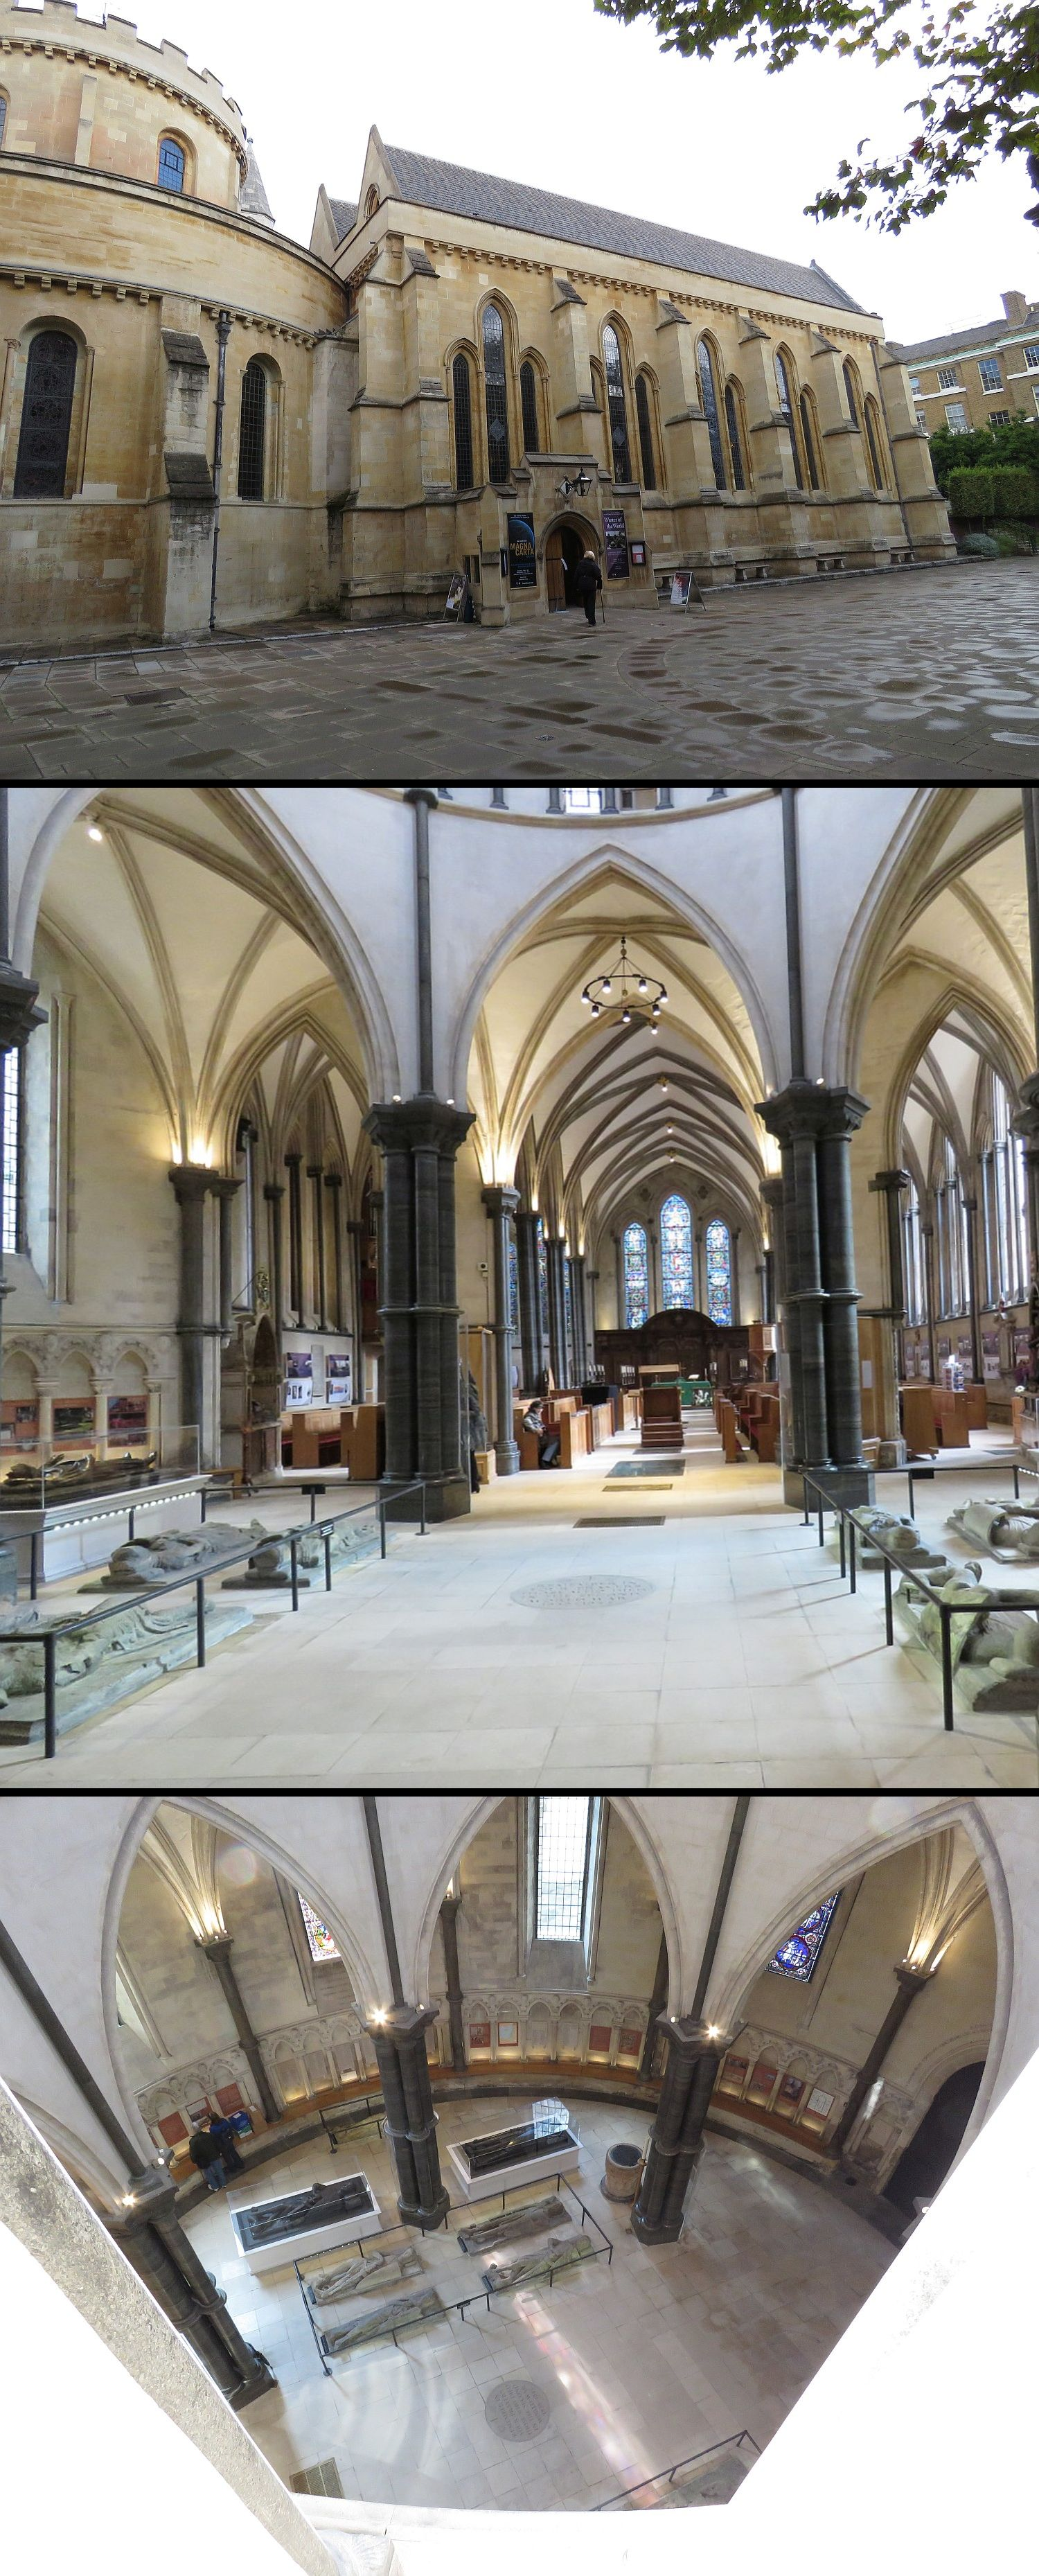 Temple Church, from top: outside, inside and view of the rotunda from the balcony shows graves of the Knights Templar.